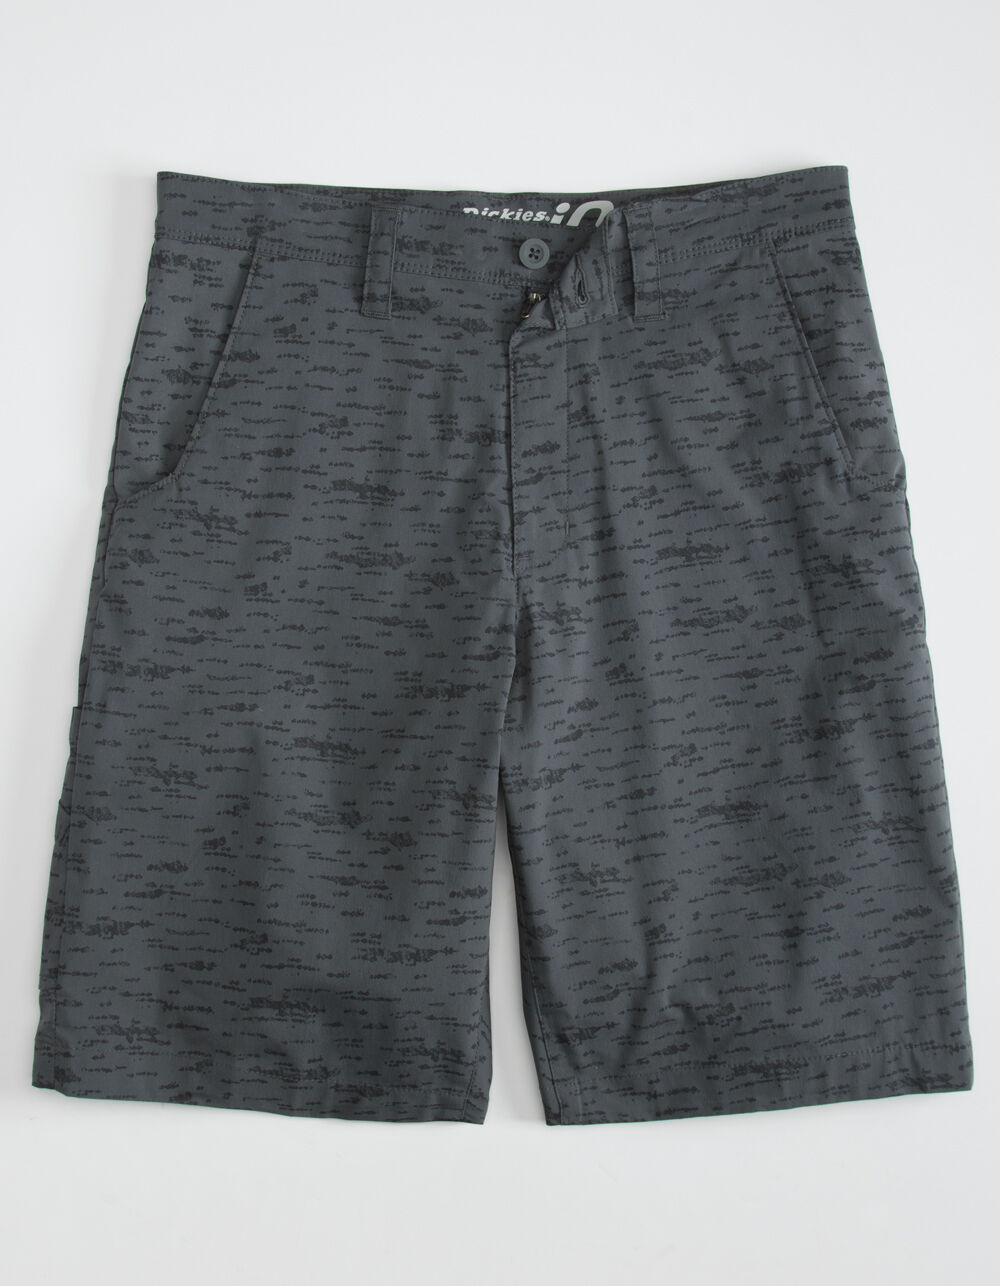 DICKIES Charcoal Hybrid Shorts